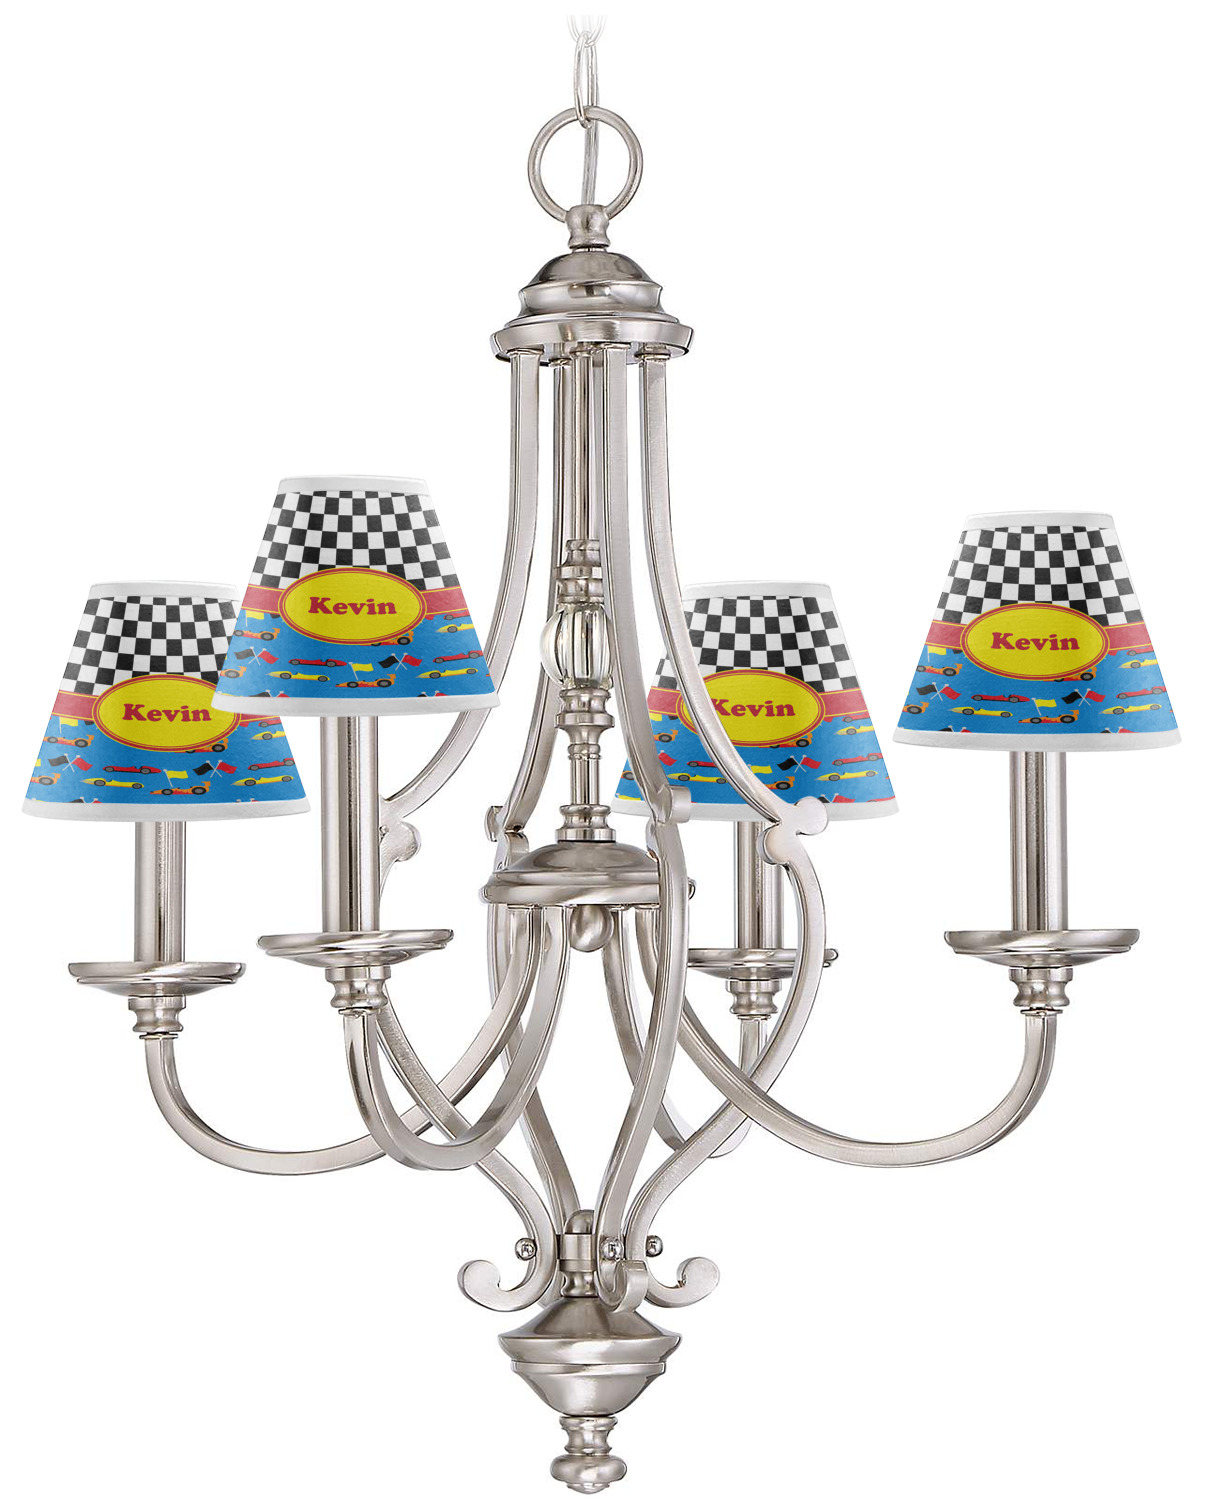 Racing Car Chandelier Lamp Shade (Personalized) - YouCustomizeIt